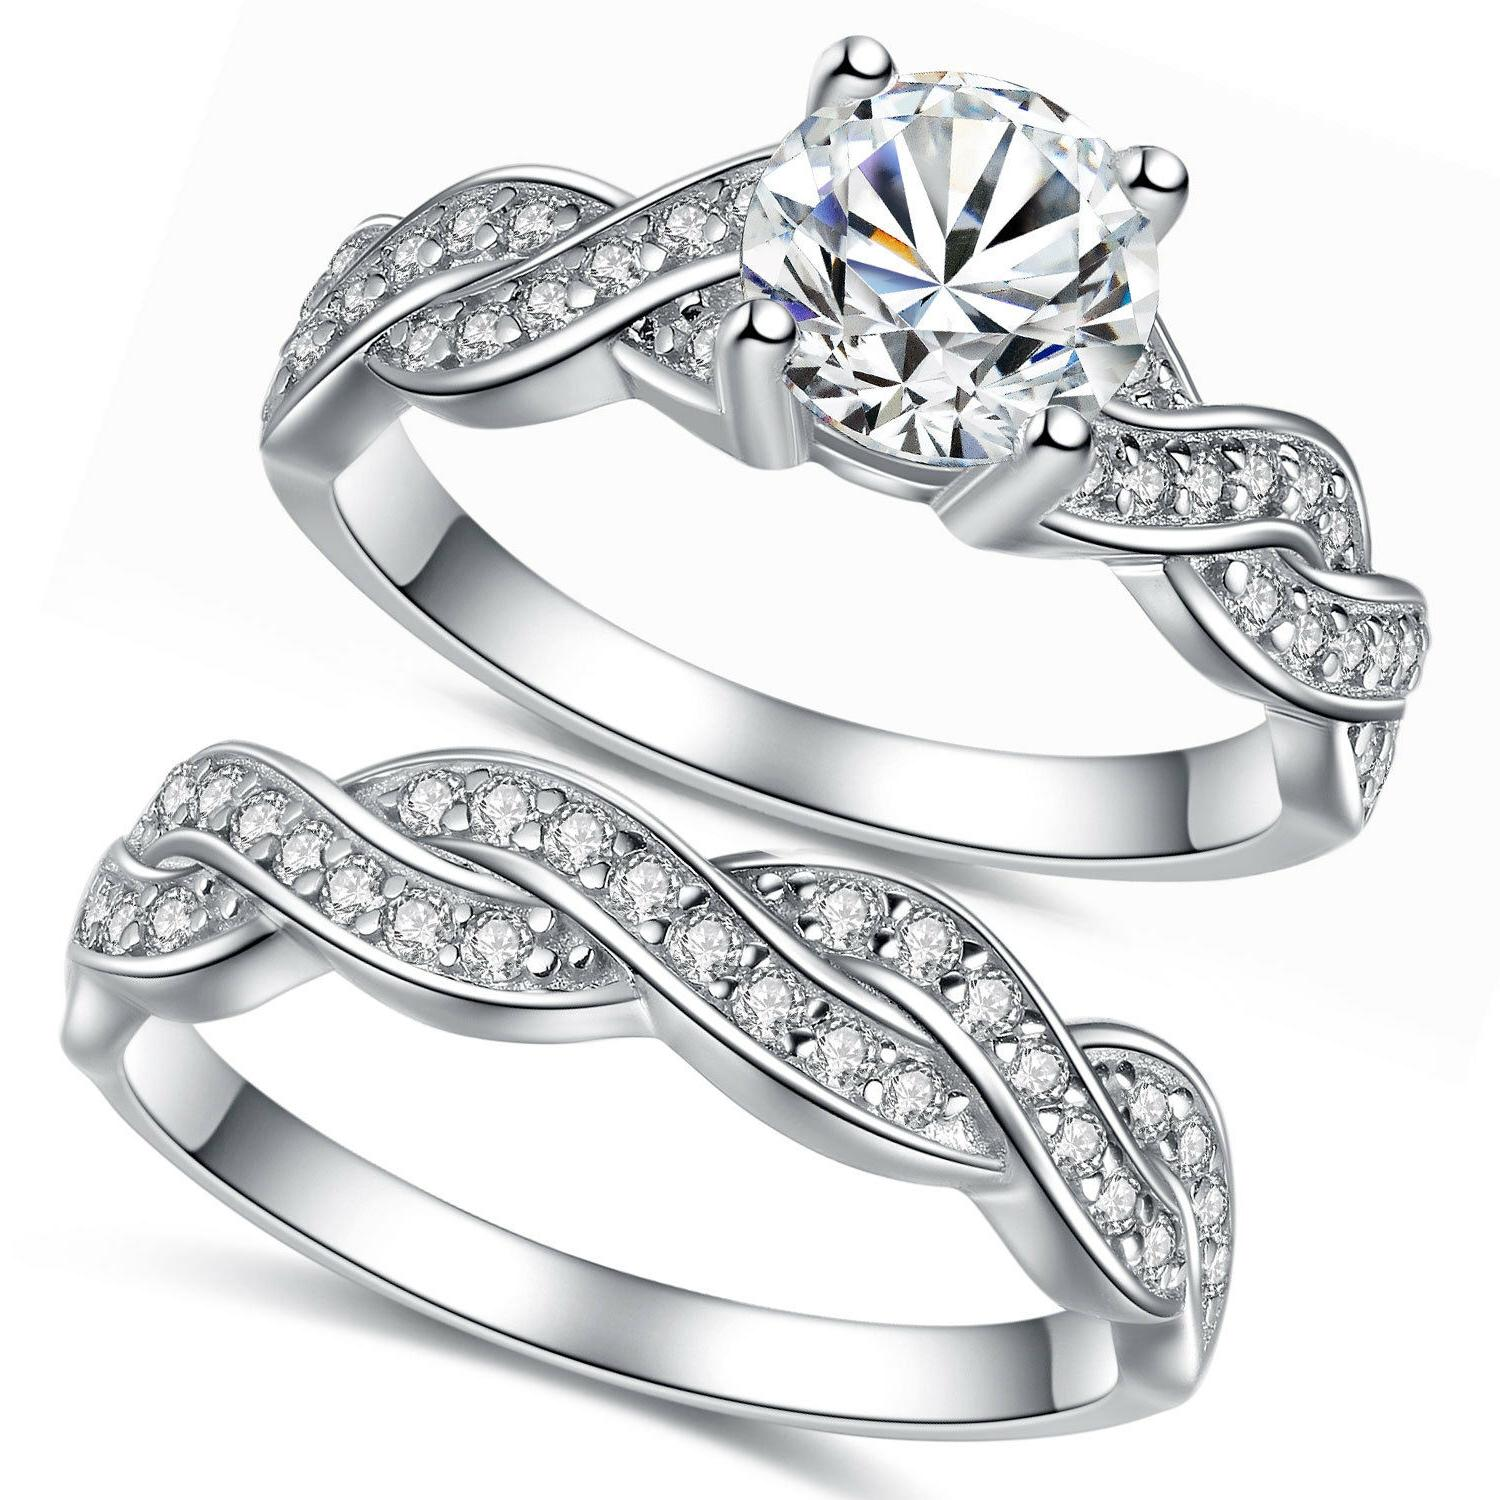 Solid Ring Band Set